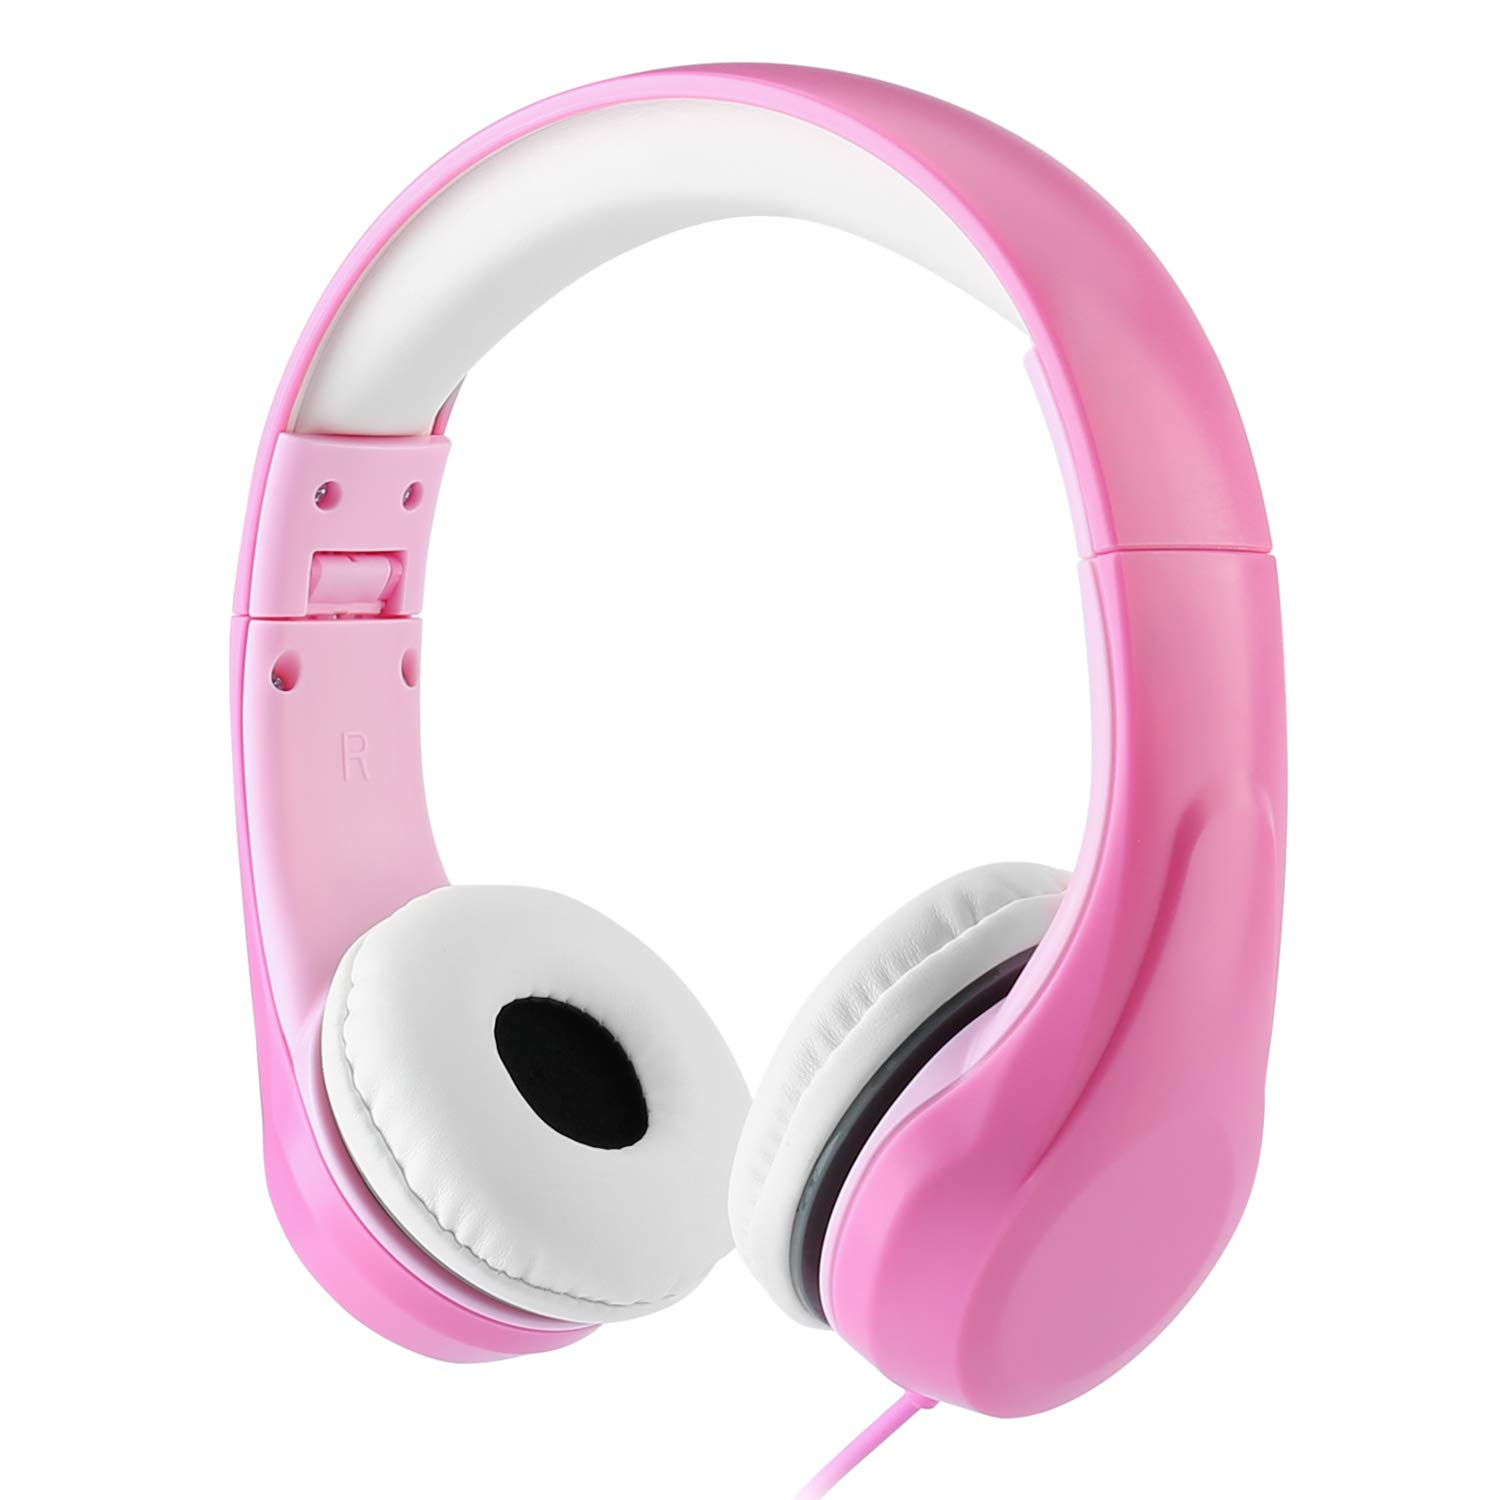 [Volume Limited] Kids Safety Foldable Stereo Headphones,3.5mm Jack Wired Cord Earbuds, Volume Controlled at 85dB On/Over Ear Children Toddler Headset,